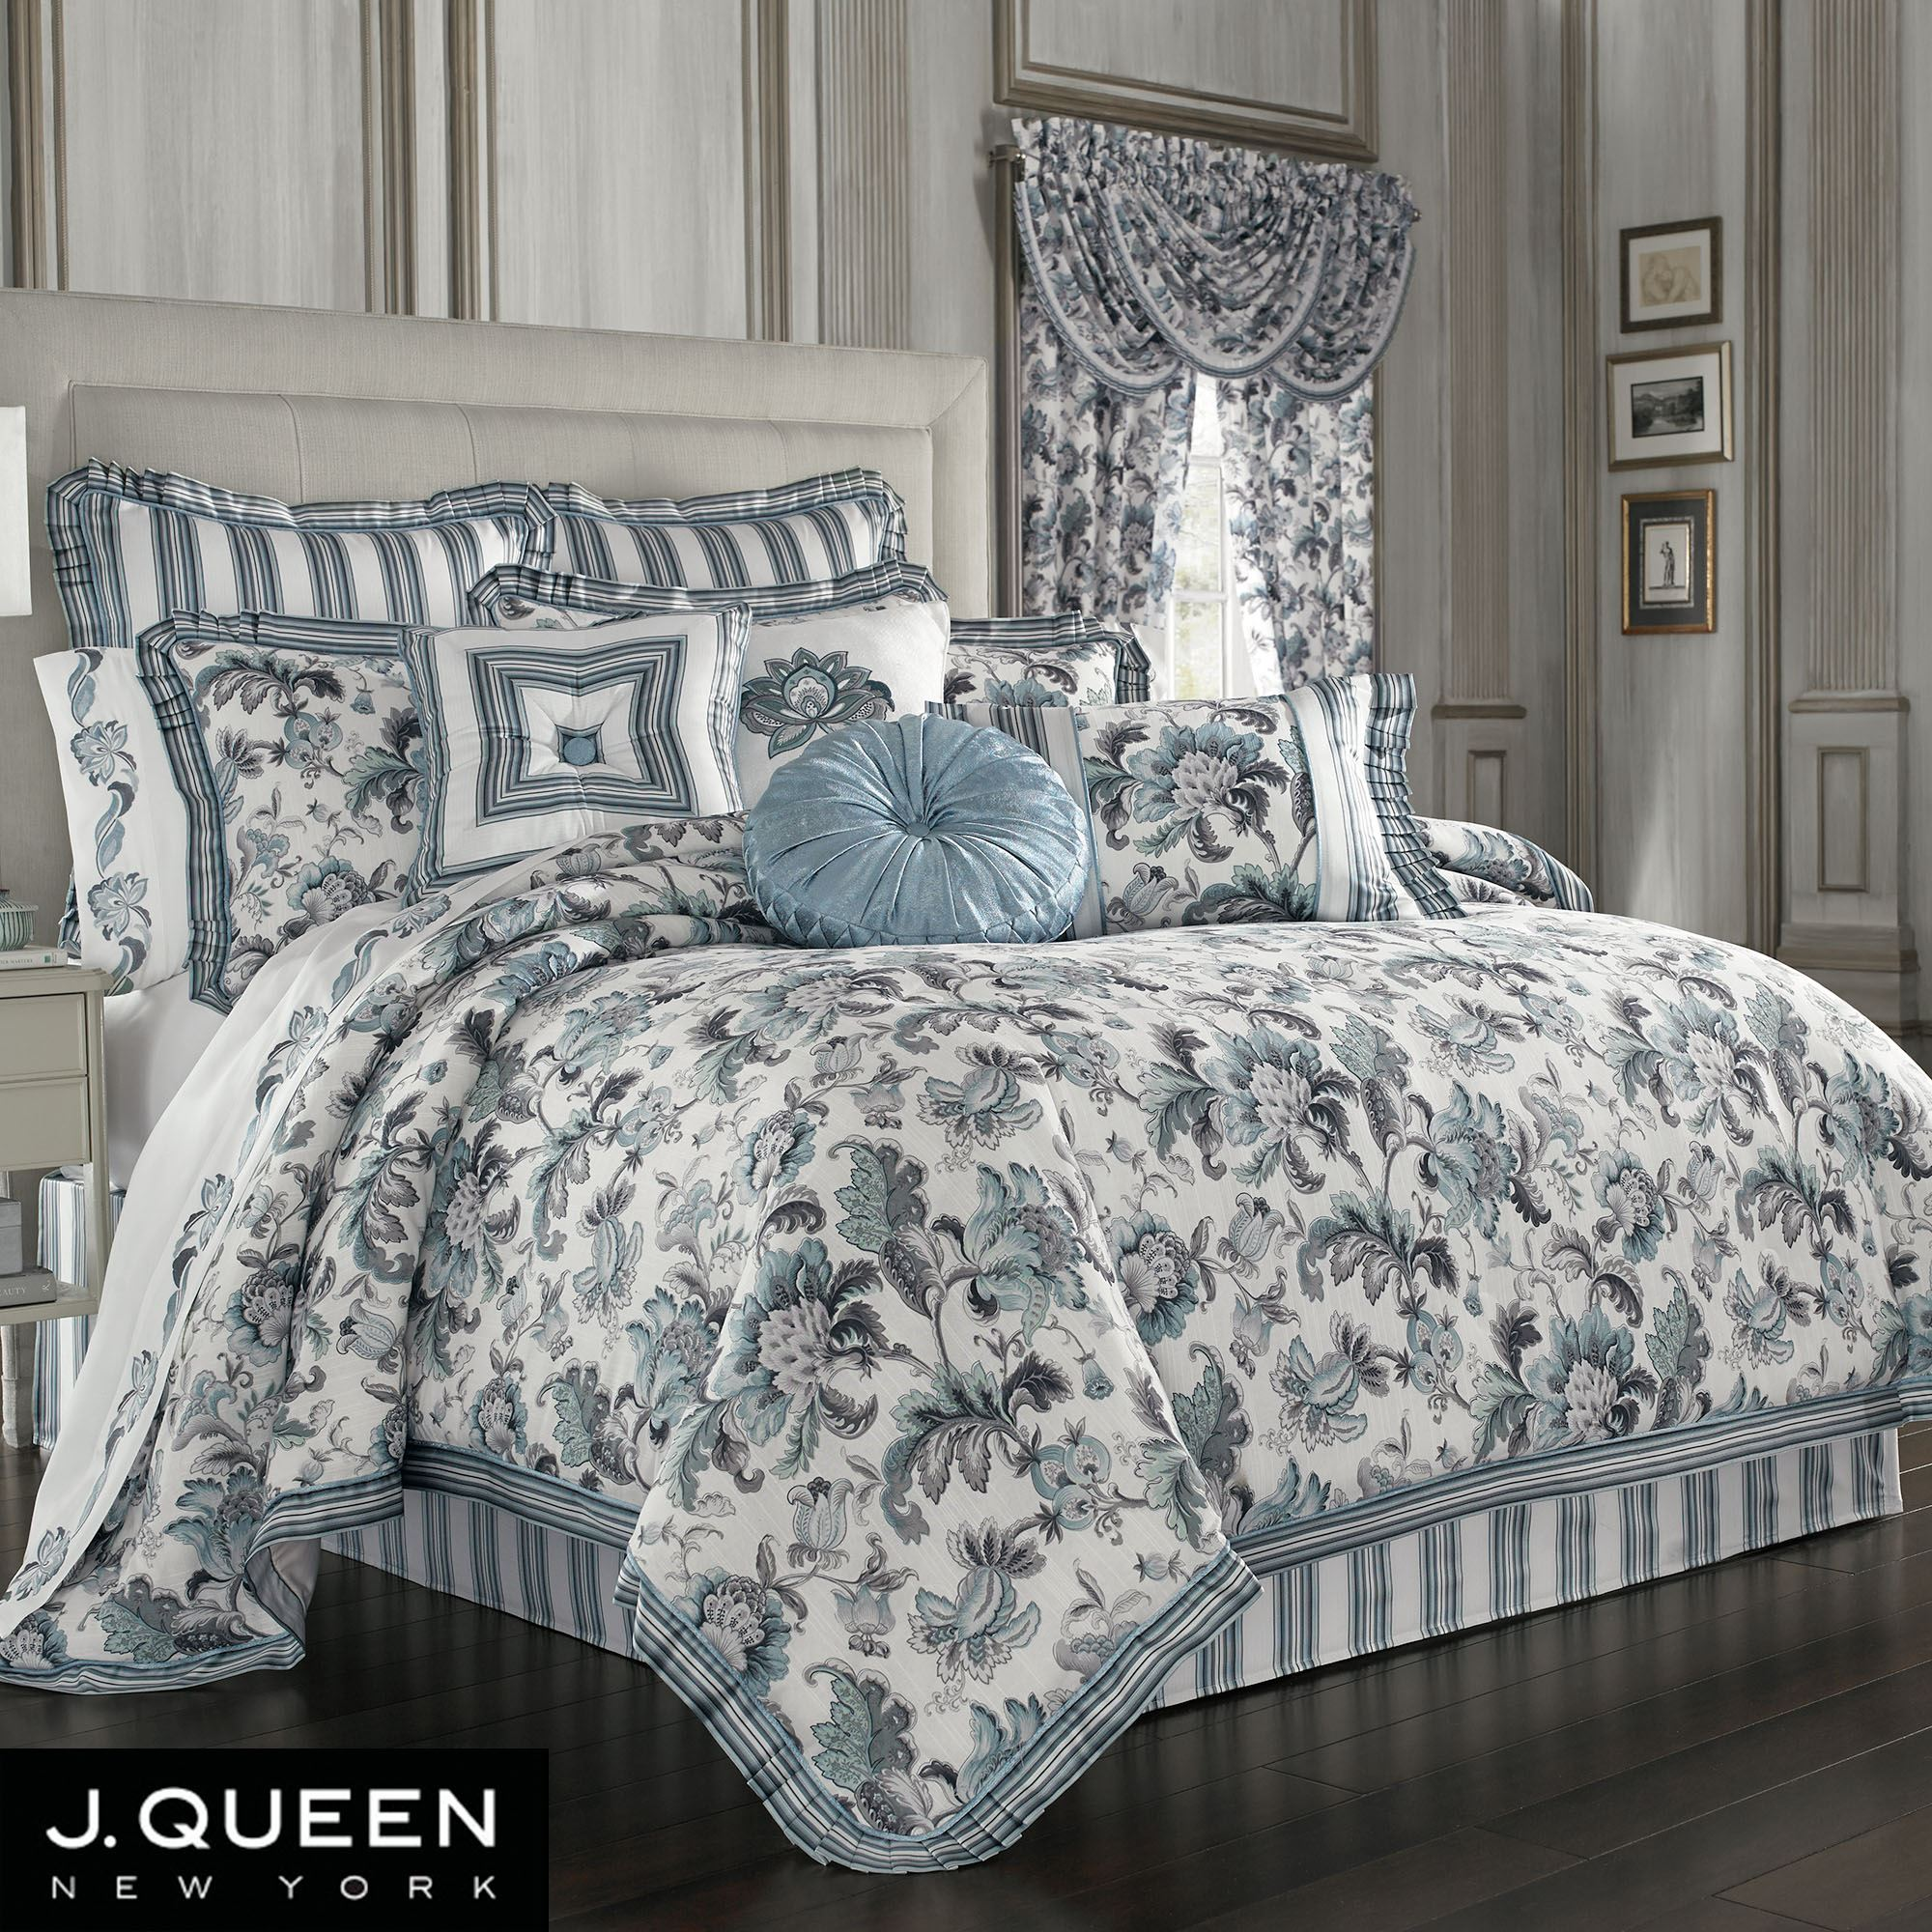 Atrium Jacobean Floral Comforter Bedding By J Queen New York